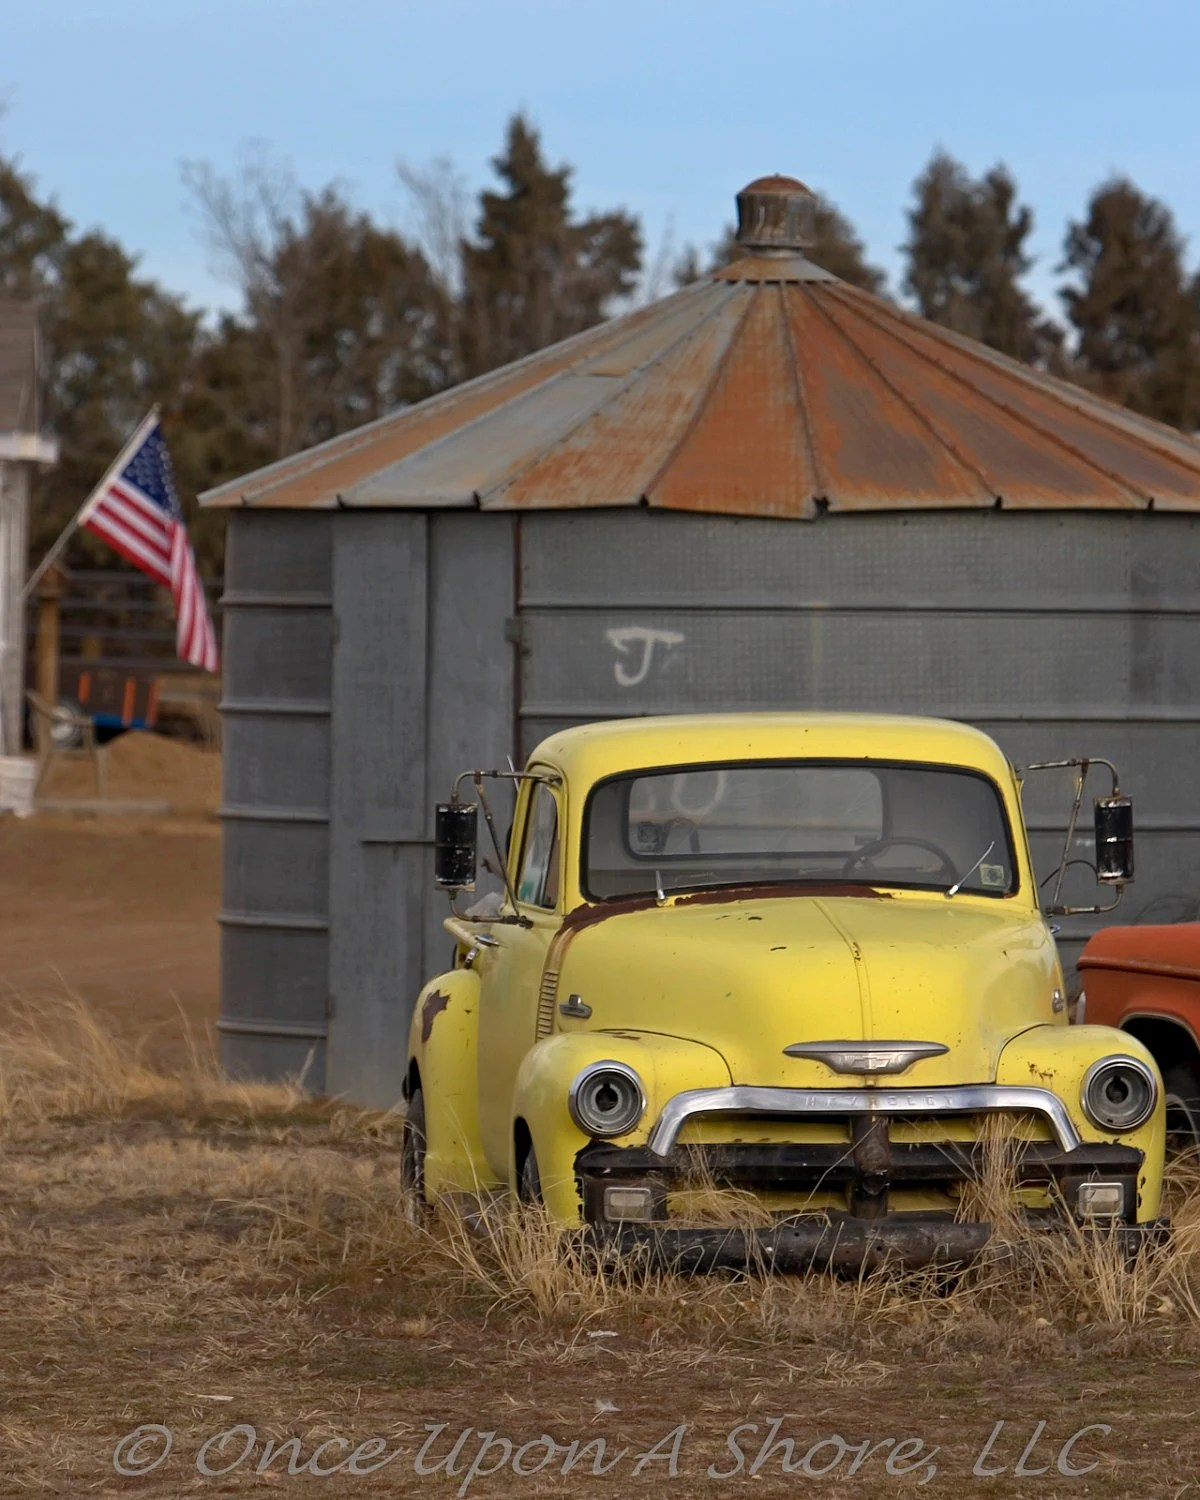 Heartland Americana (8x10 print) color print of a classic Chevy Trick with the US flag in the background - OnceUponAShore